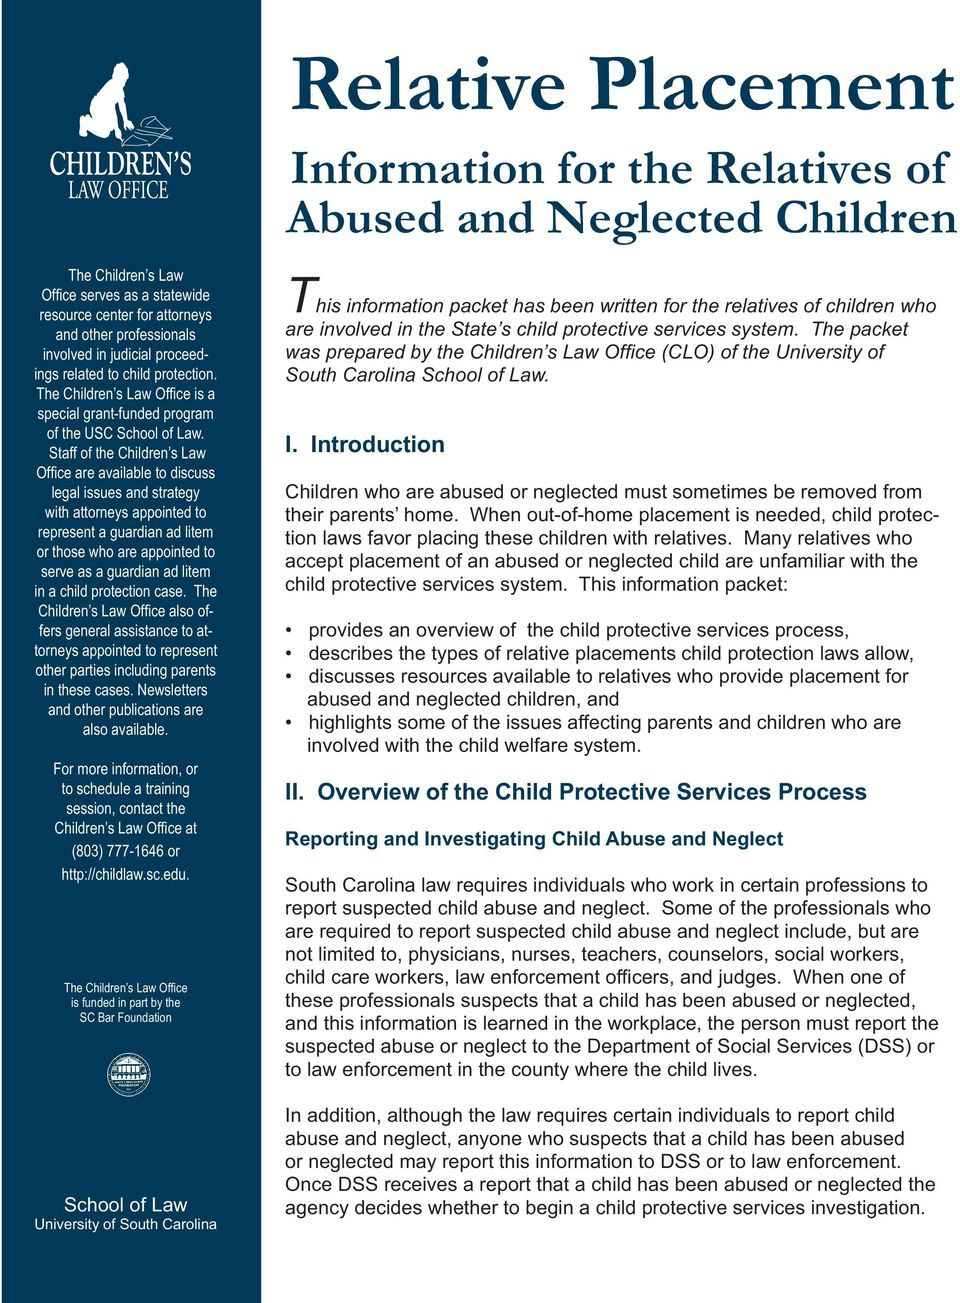 Staff of the Children s Law Offi ce are available to discuss legal issues and strategy with attorneys appointed to represent a guardian ad litem or those who are appointed to serve as a guardian ad